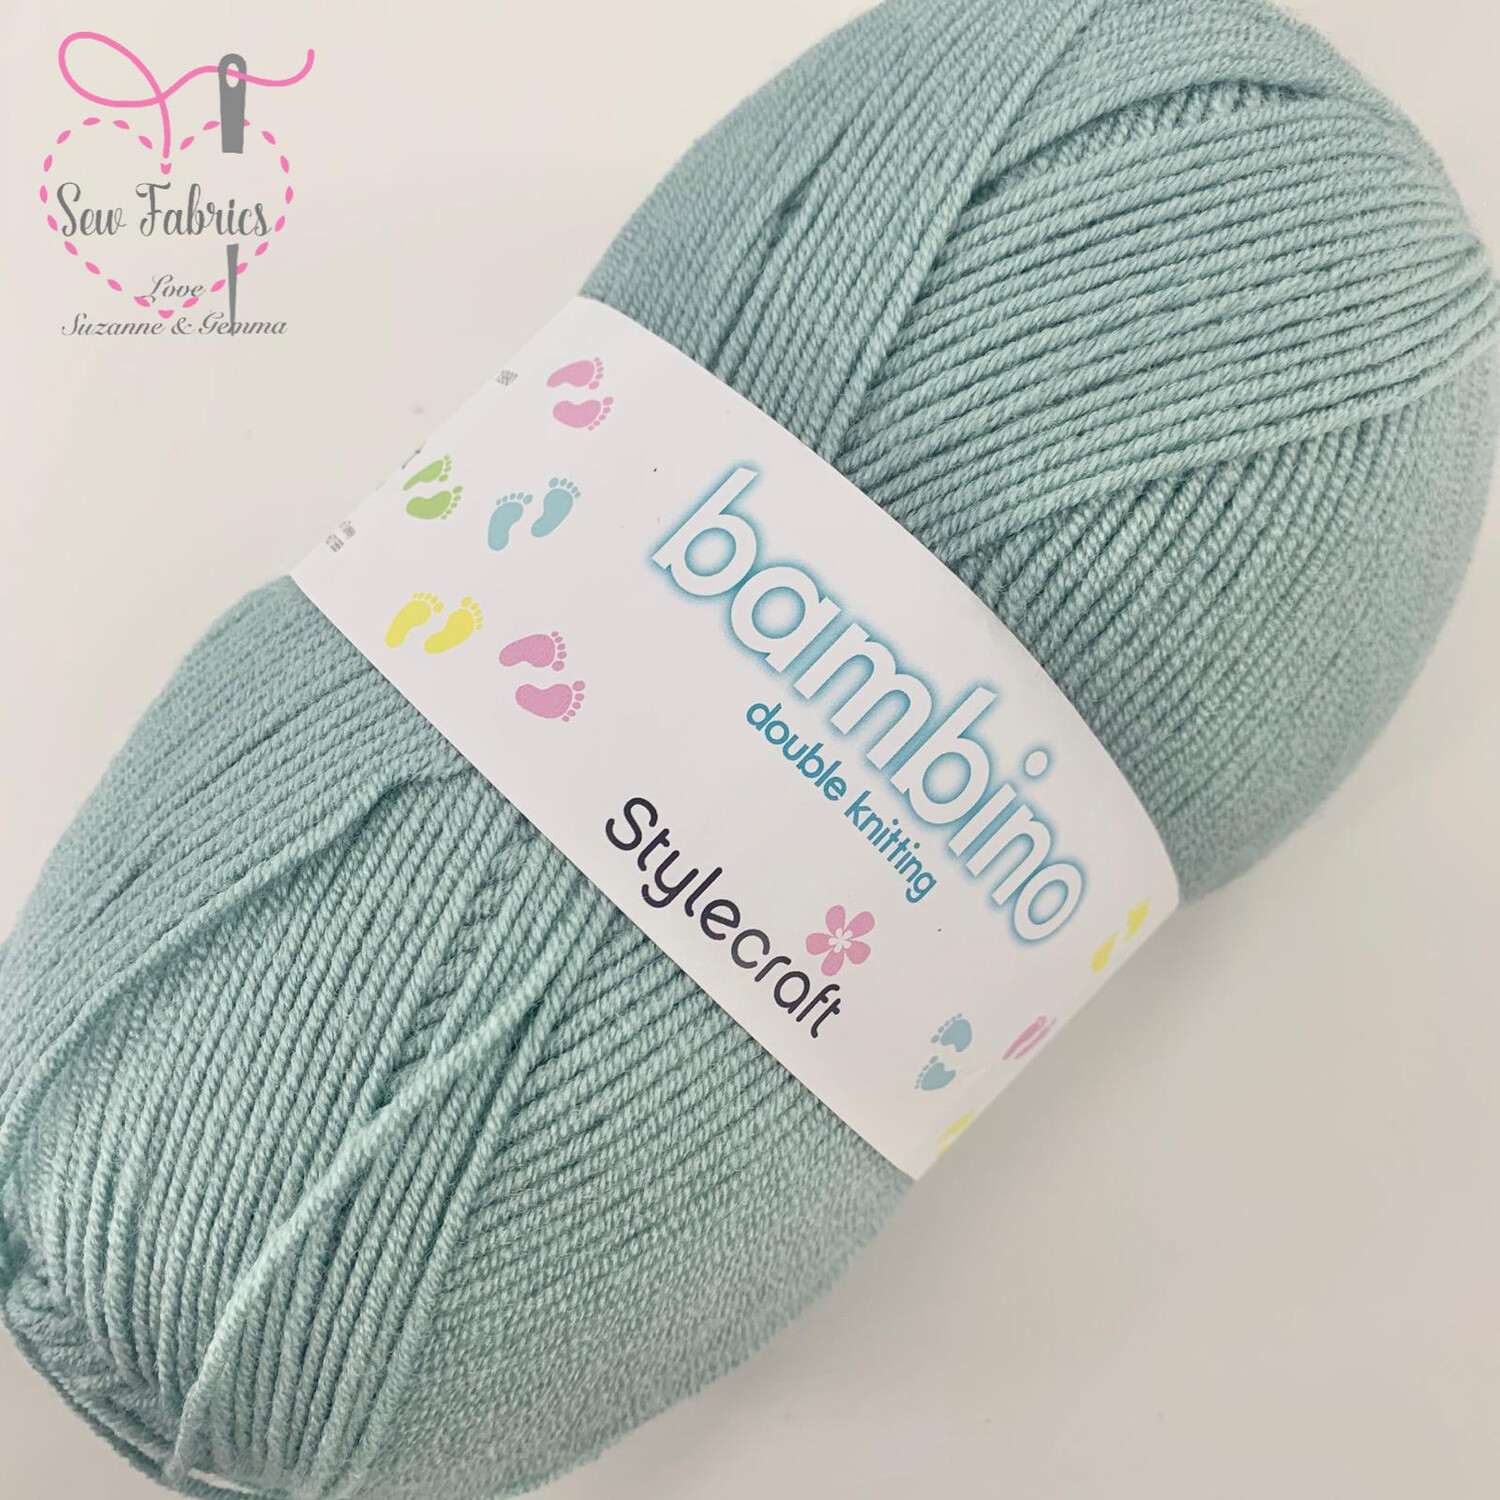 Stylecraft Bambino DK 100% Premium Acrylic Wool - Sage Green Yarn  Buy More Than 1 Ball & Get 30% Off With Code STYLE30